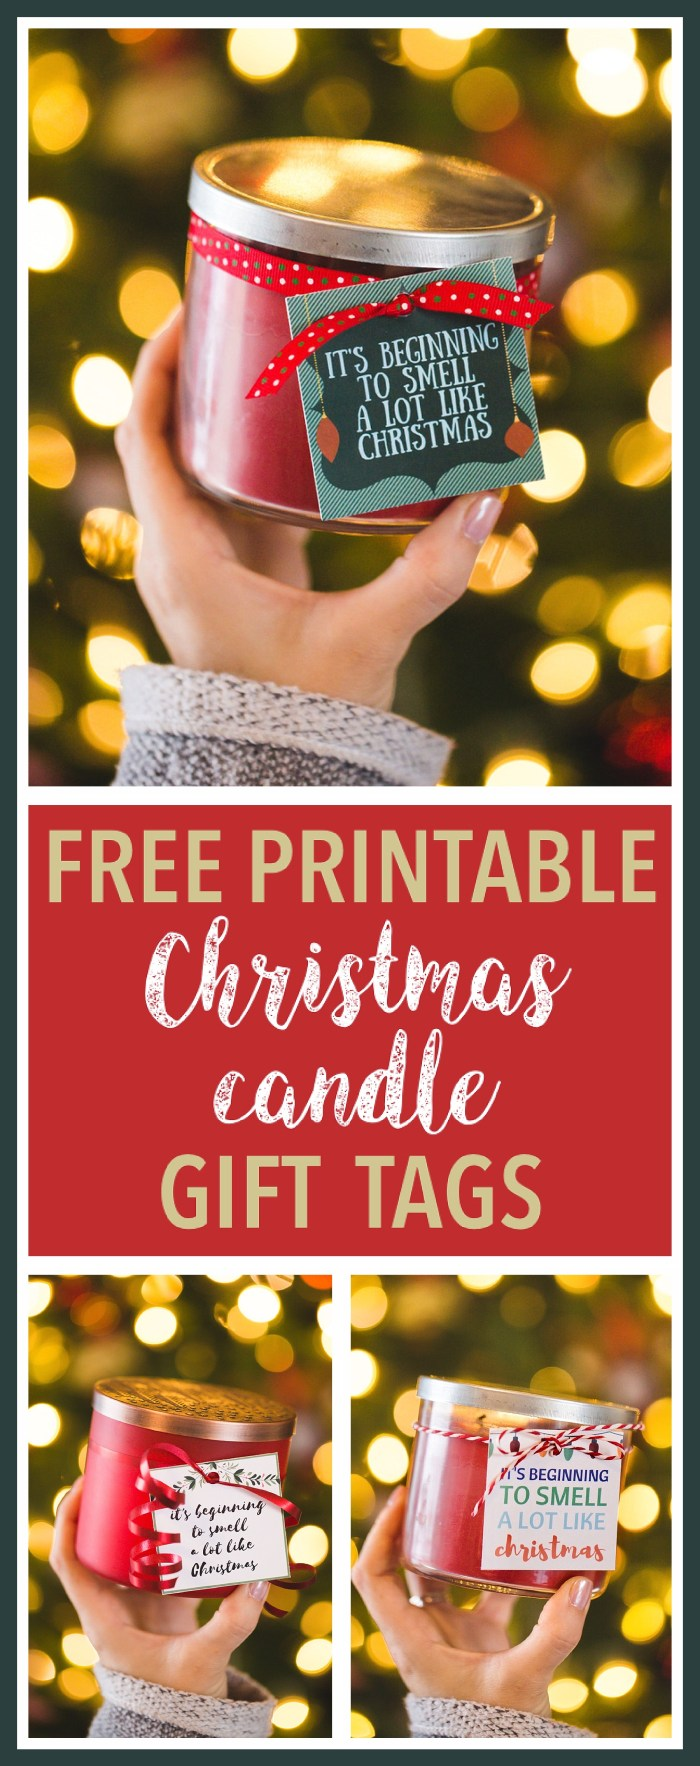 Christmas Gift Tag | Free Printable Christmas Gift Tag | Free Printable Gift Tag | DIY Christmas | Free Printable Christmas | Candle Gift Tag | Christmas Candle | Gift Ideas | Christmas Gift | Christmas Gifts for Mom | Christmas Gifts DIY | Free Printable Christmas | Free Printable Tags | Six Clever Sisters